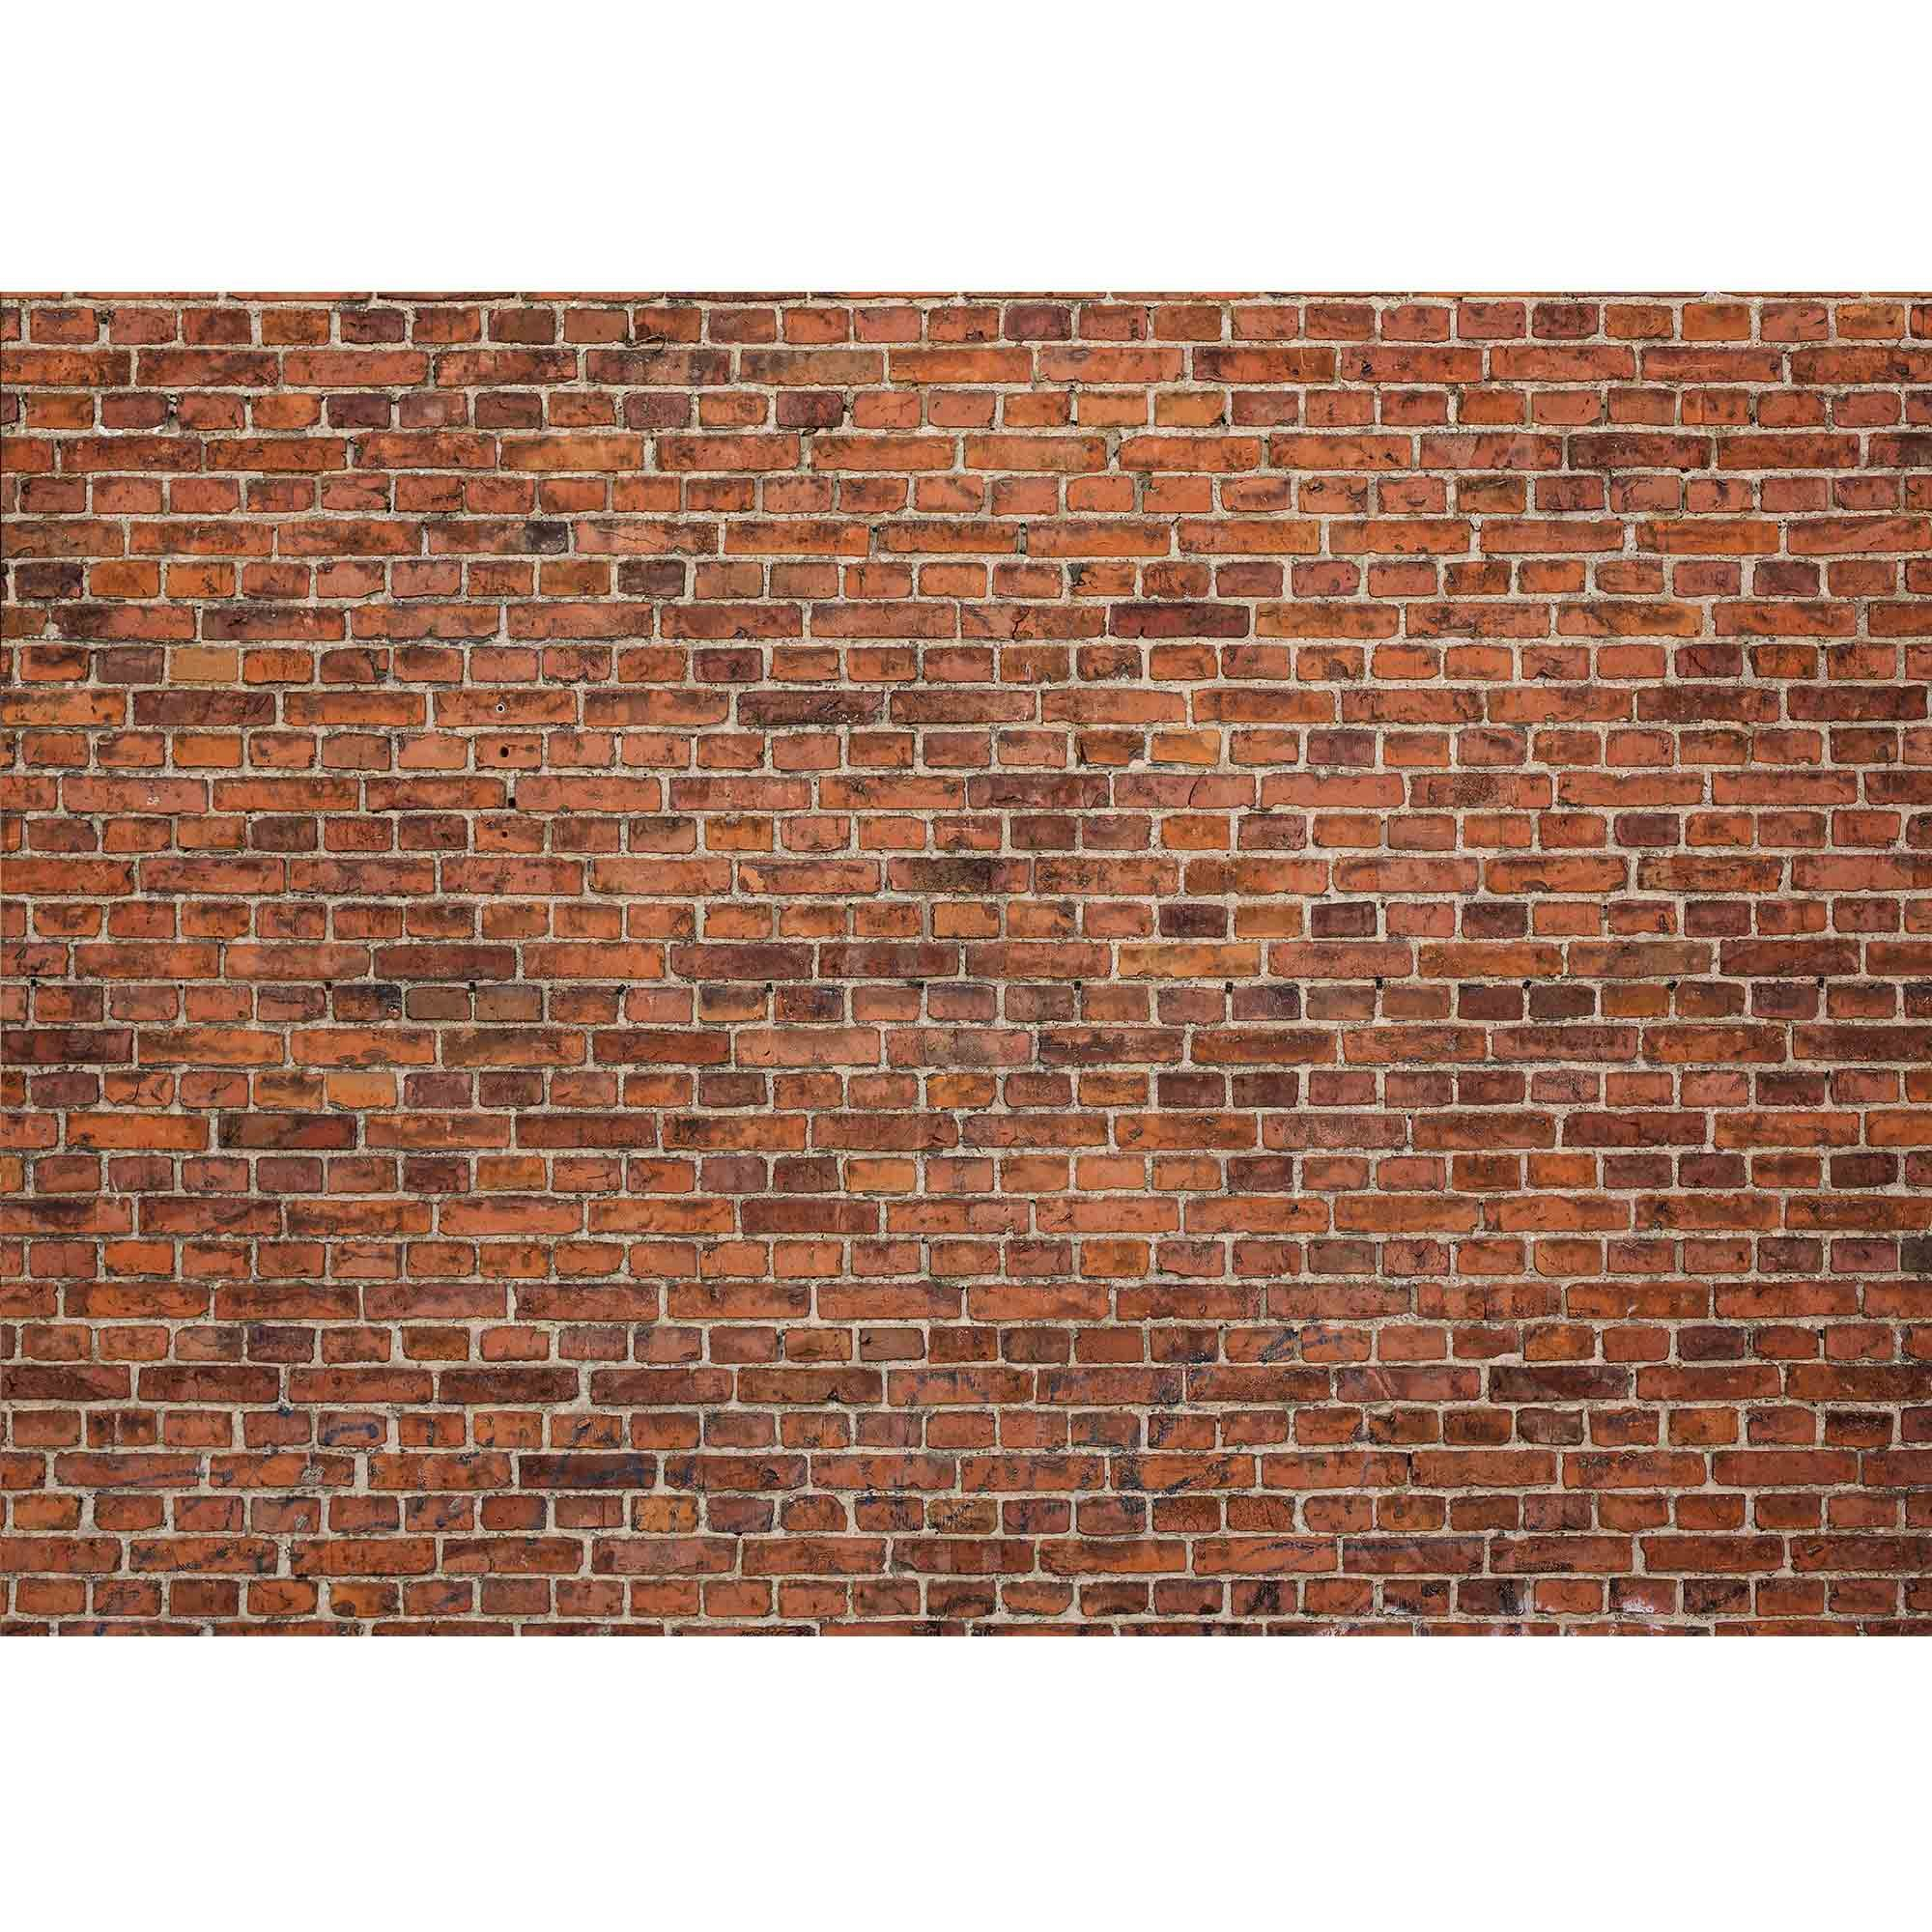 wall26 - Grunge Red Brick Wall Background with Copy Space - Removable Wall Mural | Self-adhesive Large Wallpaper - 100x144 inches by wall26 (Image #2)